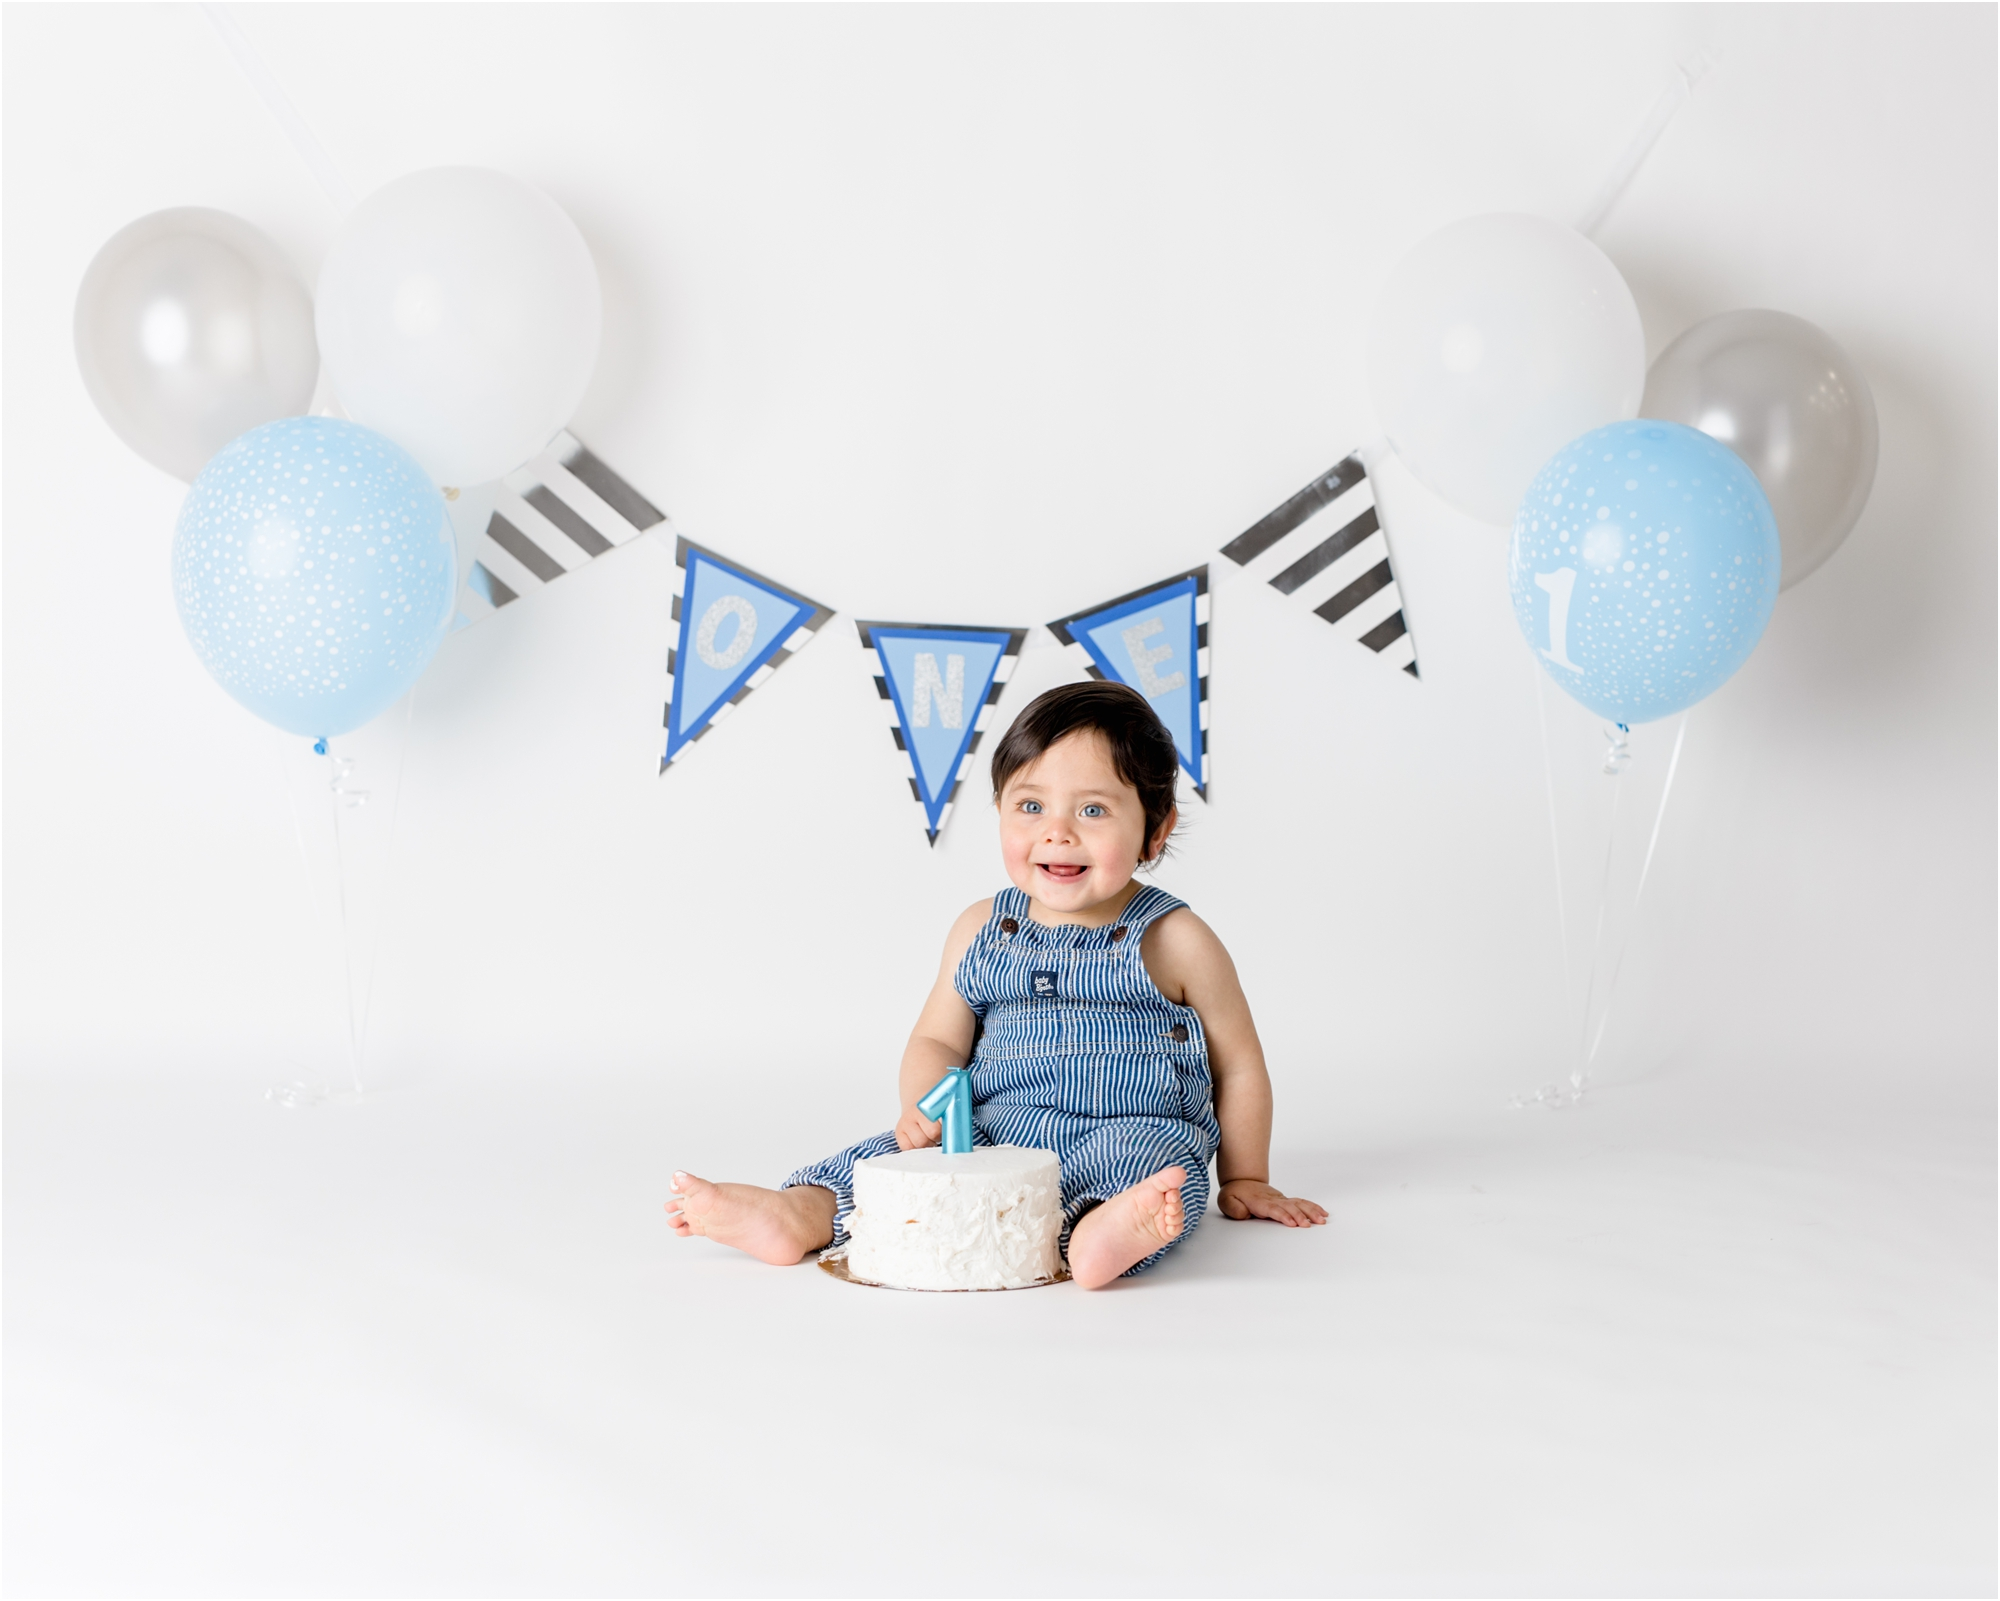 Baby boy on white backdrop with blue, silver and white themed cake smash. Photo by Lifetime of Clicks Photography.